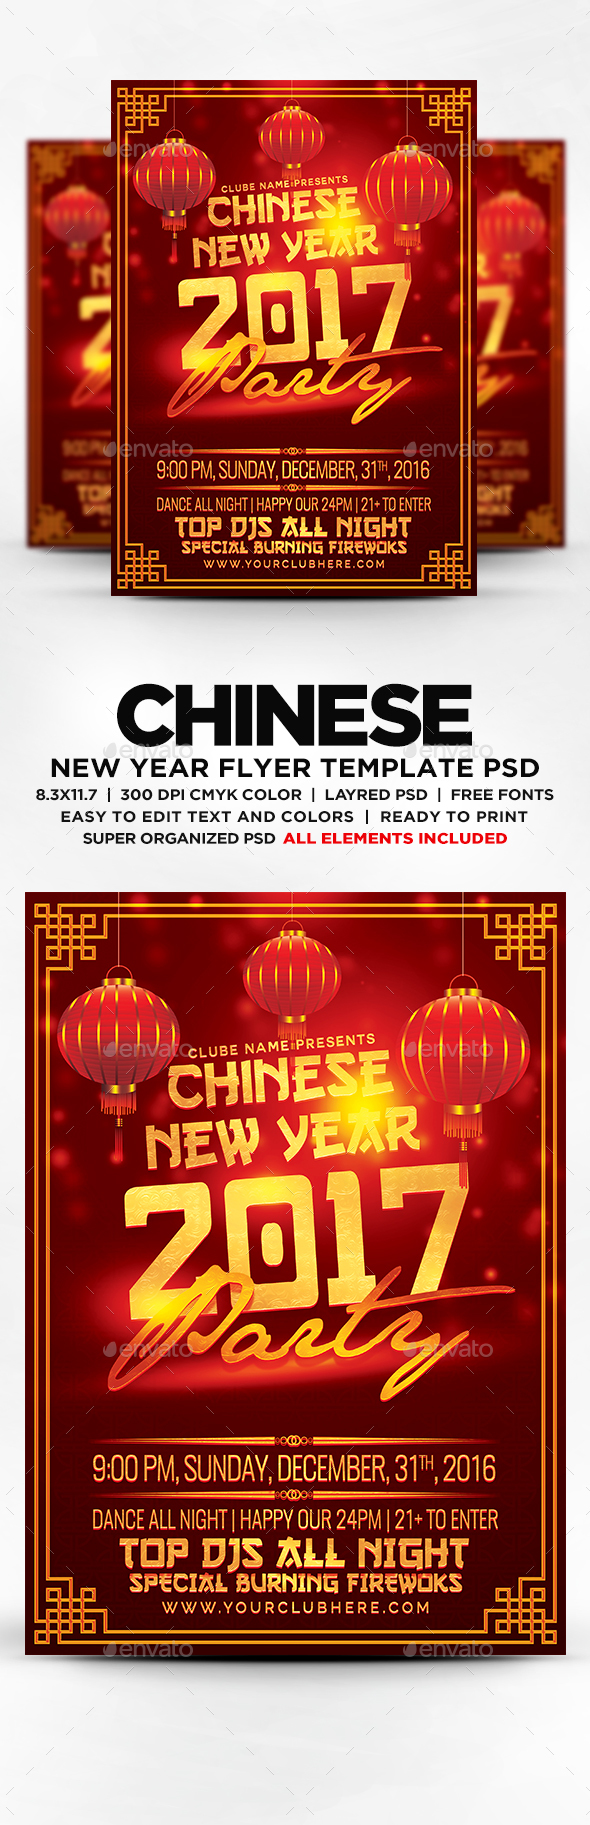 Chinese New Year Party Flyer Template Psd  New Year Party Flyer